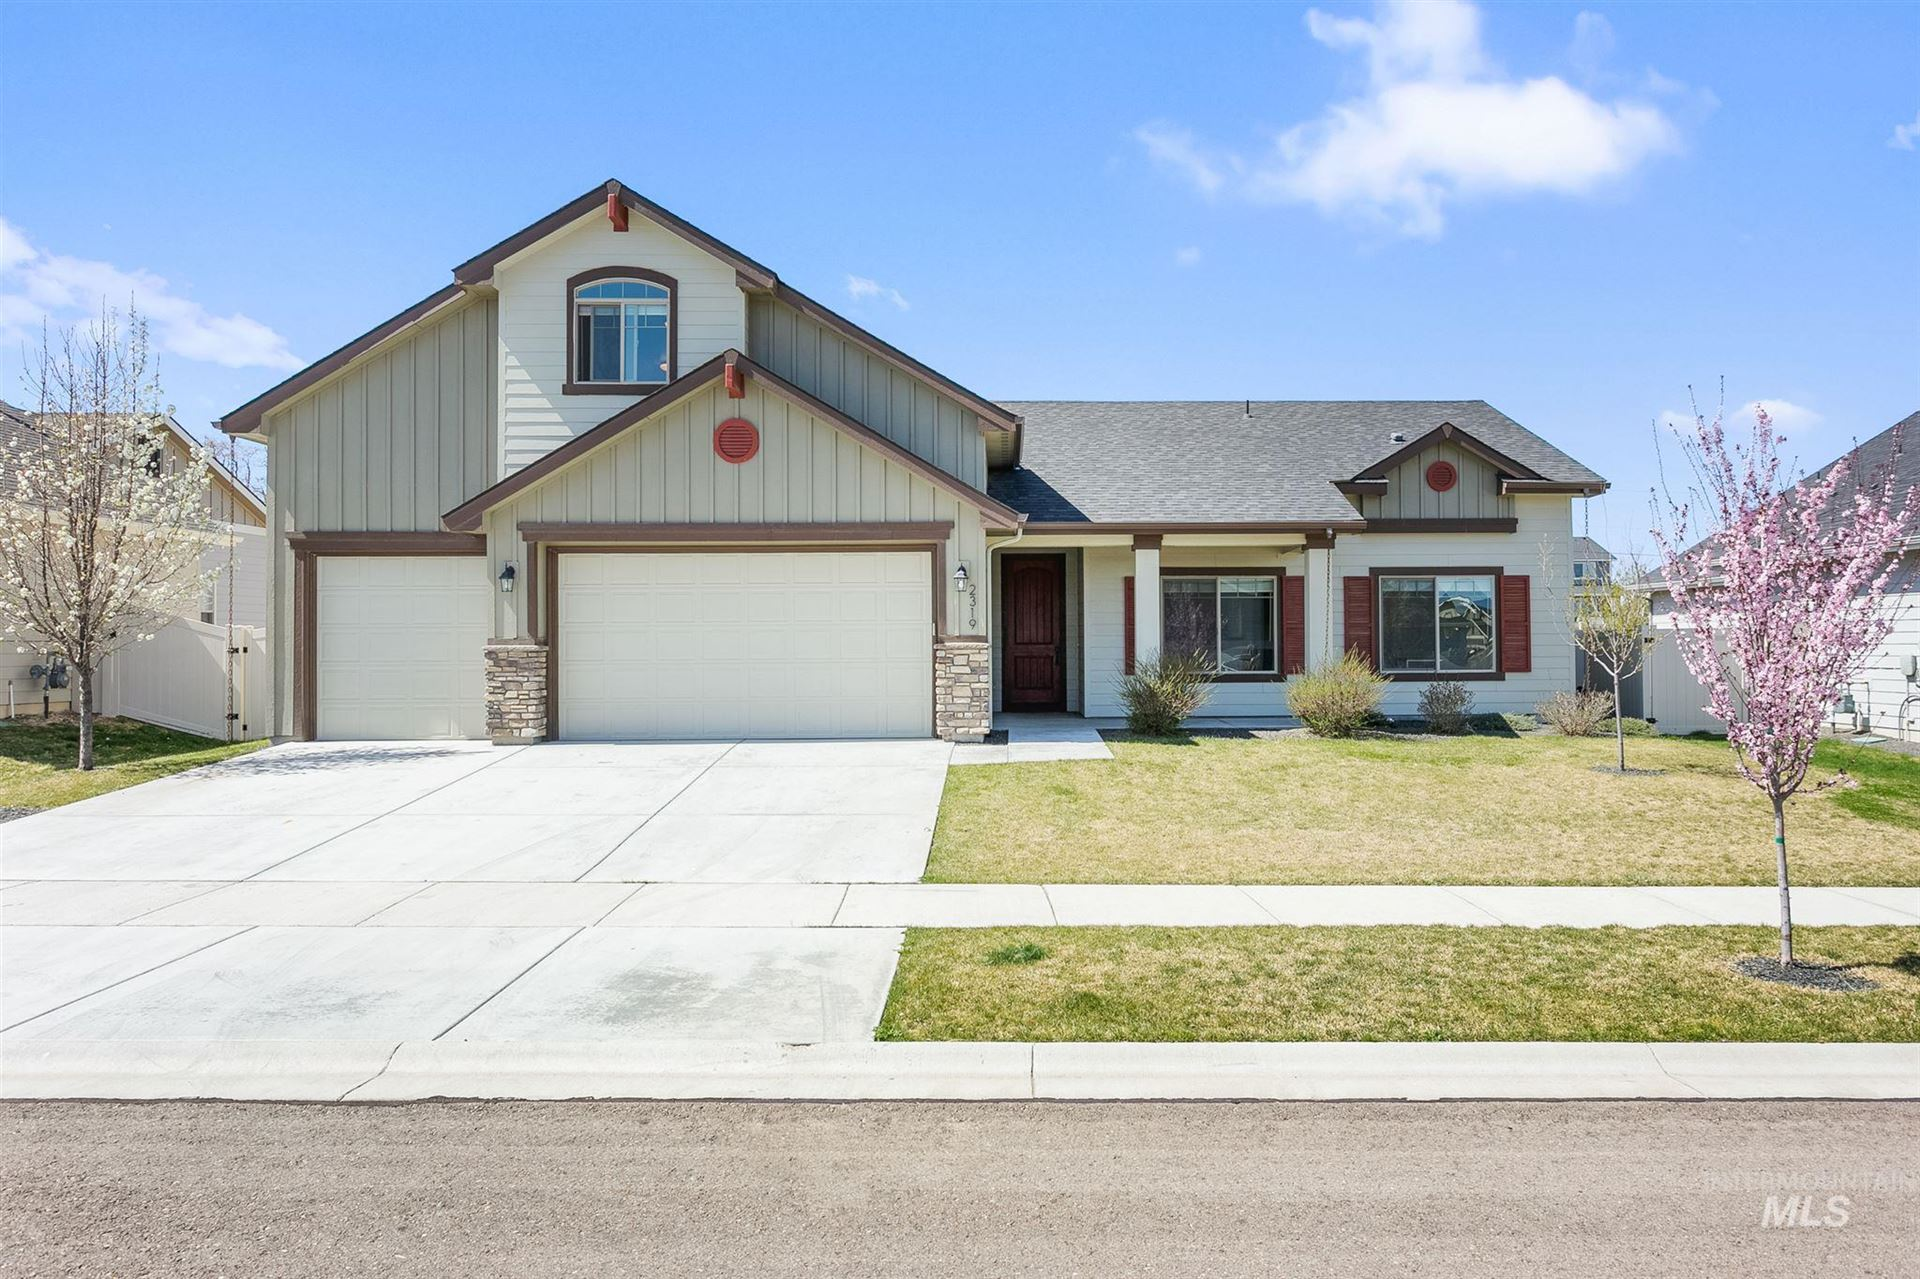 Photo of 2319 S Spoonbill Ave, Meridian, ID 83642 (MLS # 98798816)